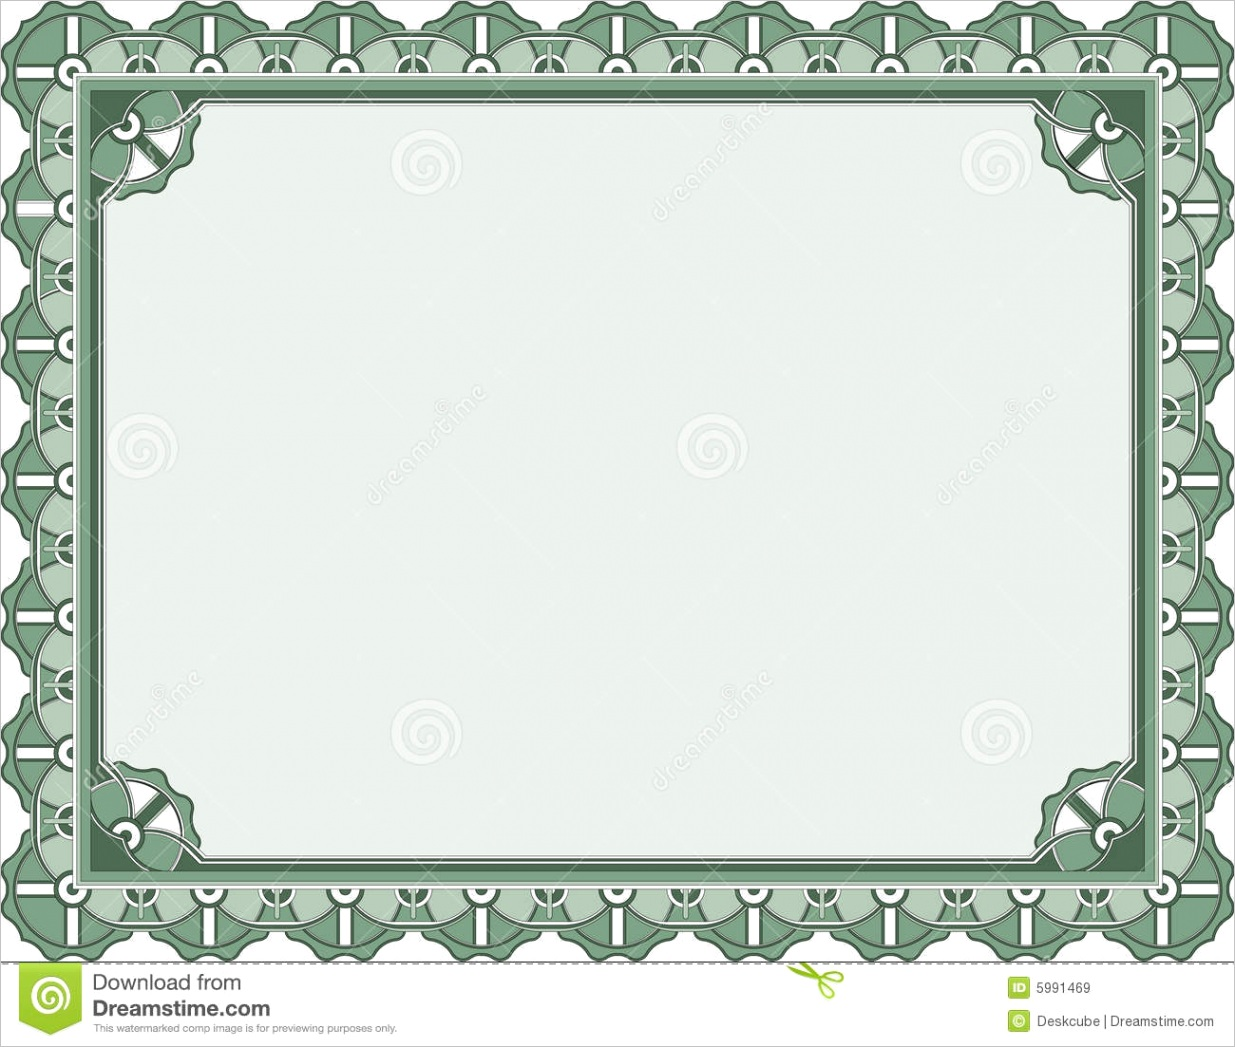 royalty free stock images award certificate template image